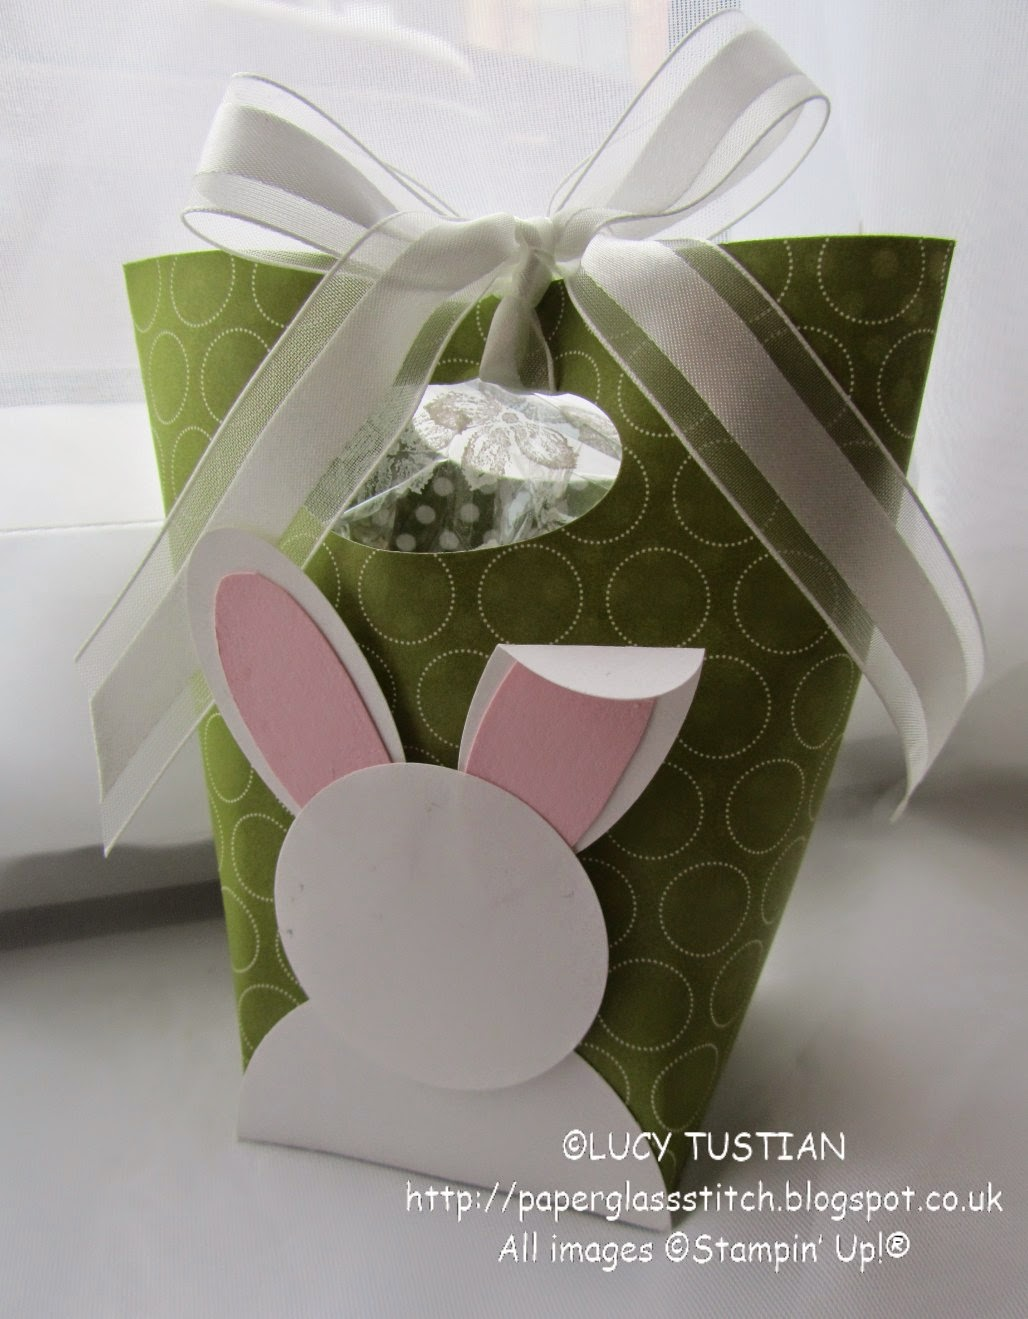 Paper glass stitch easter bunny bucket gift bag tutorial to make the bag you first need to make a tray box cut a piece of old olive cardstock to 10cm x 10cm 3 1516ths x 3 1516ths and score negle Gallery